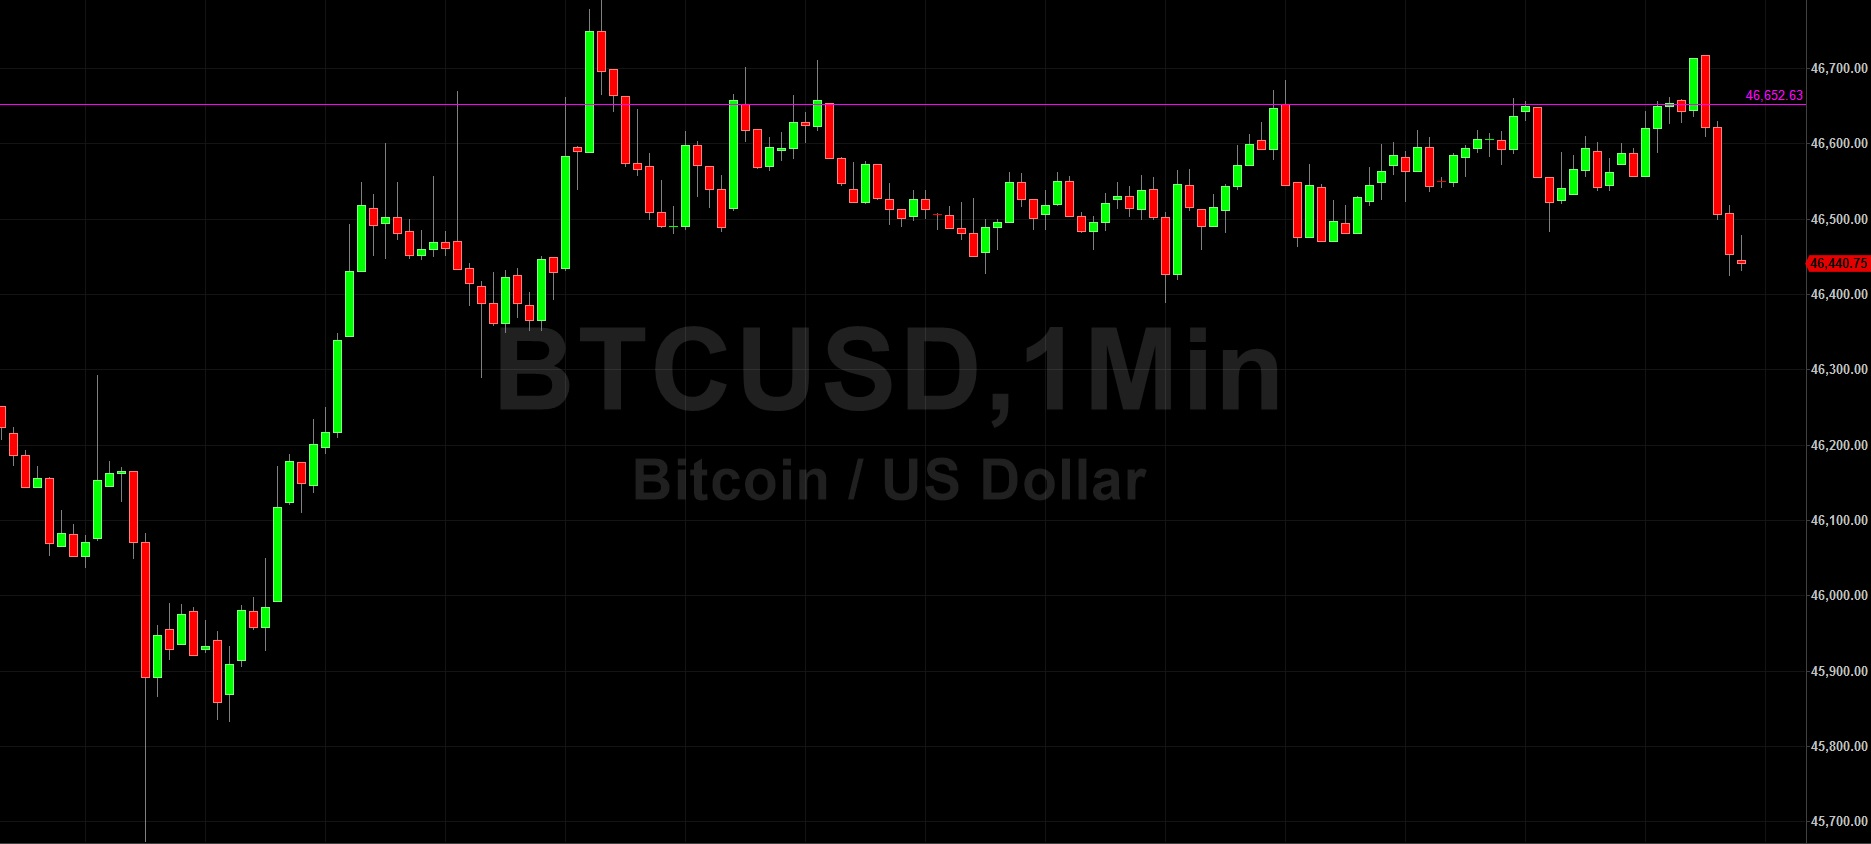 BTC/USD Orbiting 46652 Technical Level After Rout:  Sally Ho's Technical Analysis 9 September 2021 BTC